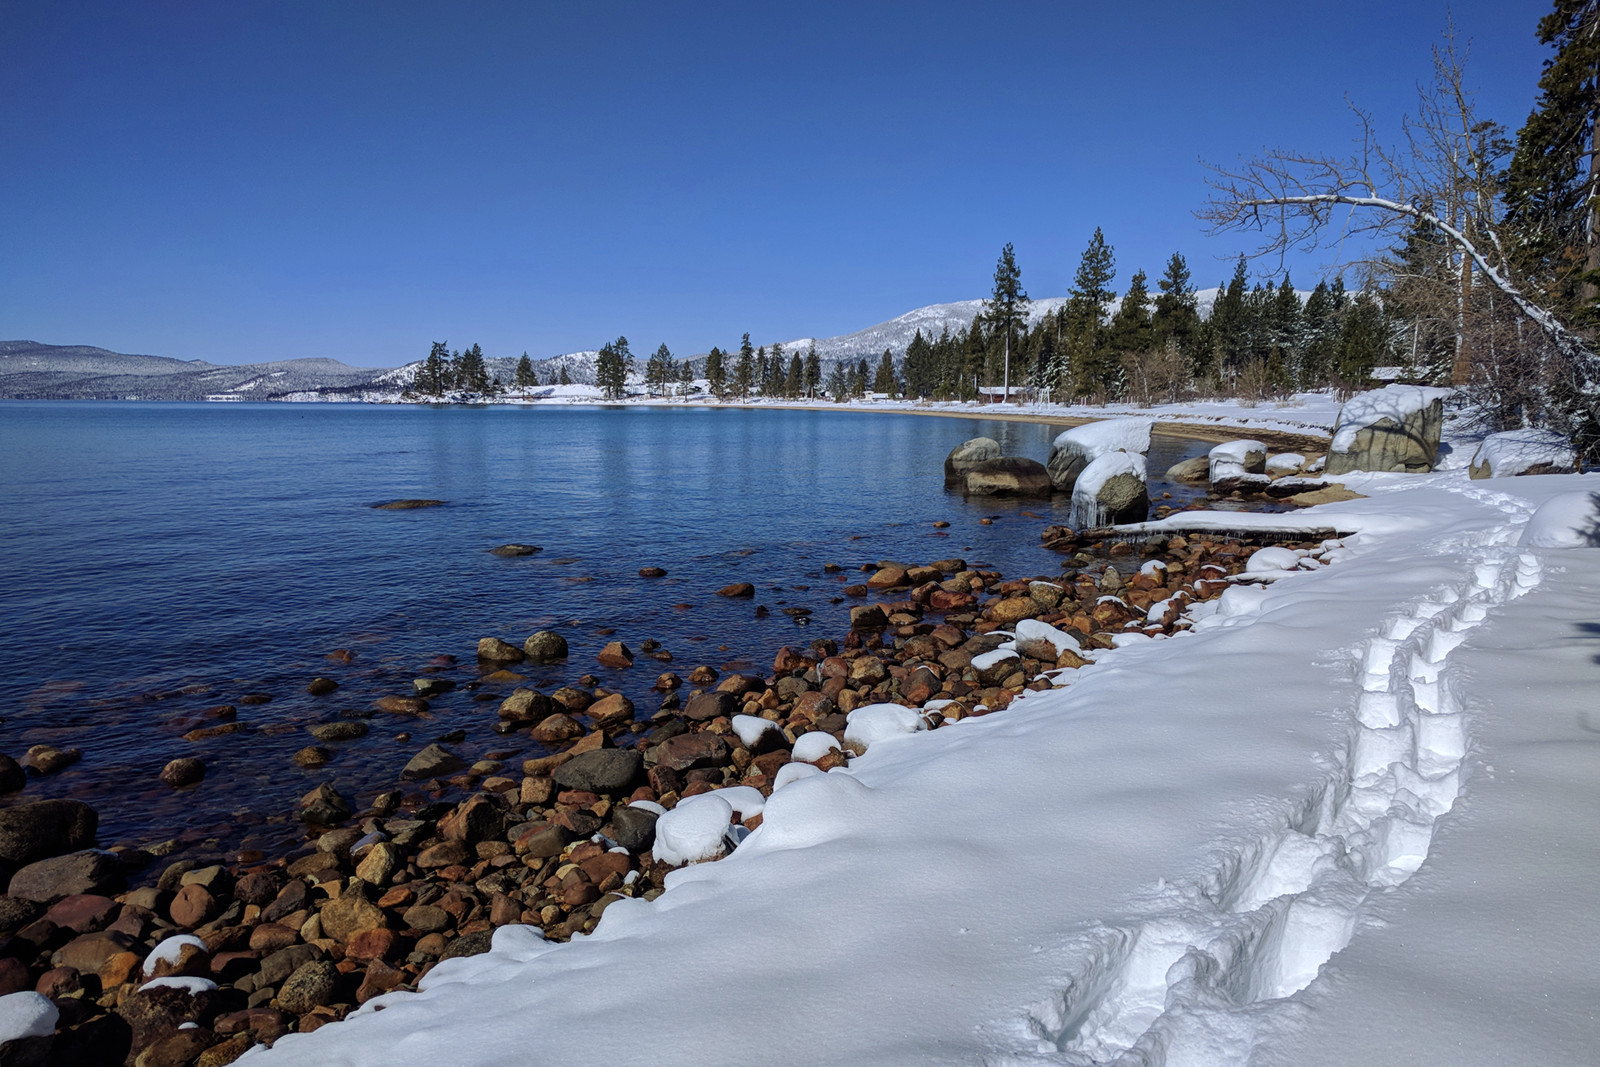 Snowshoe tracks along the lake around Lake Tahoe, California